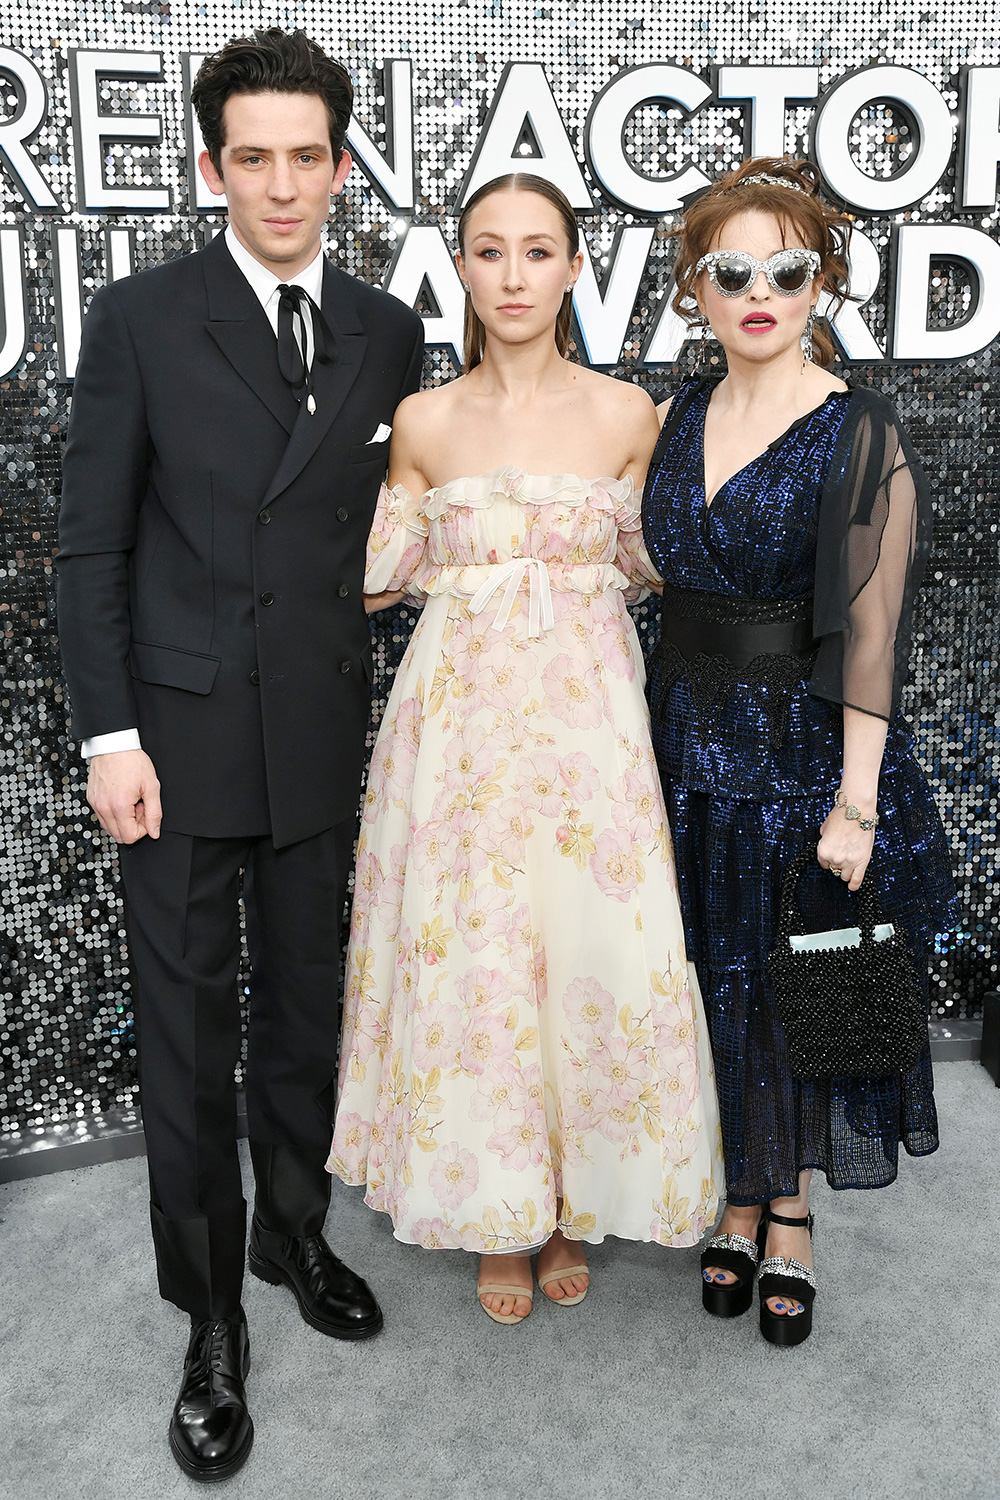 Josh O'Connor, Erin Doherty and Helena Bonham Carter 26th Annual Screen Actors Guild Awards, Arrivals, Shrine